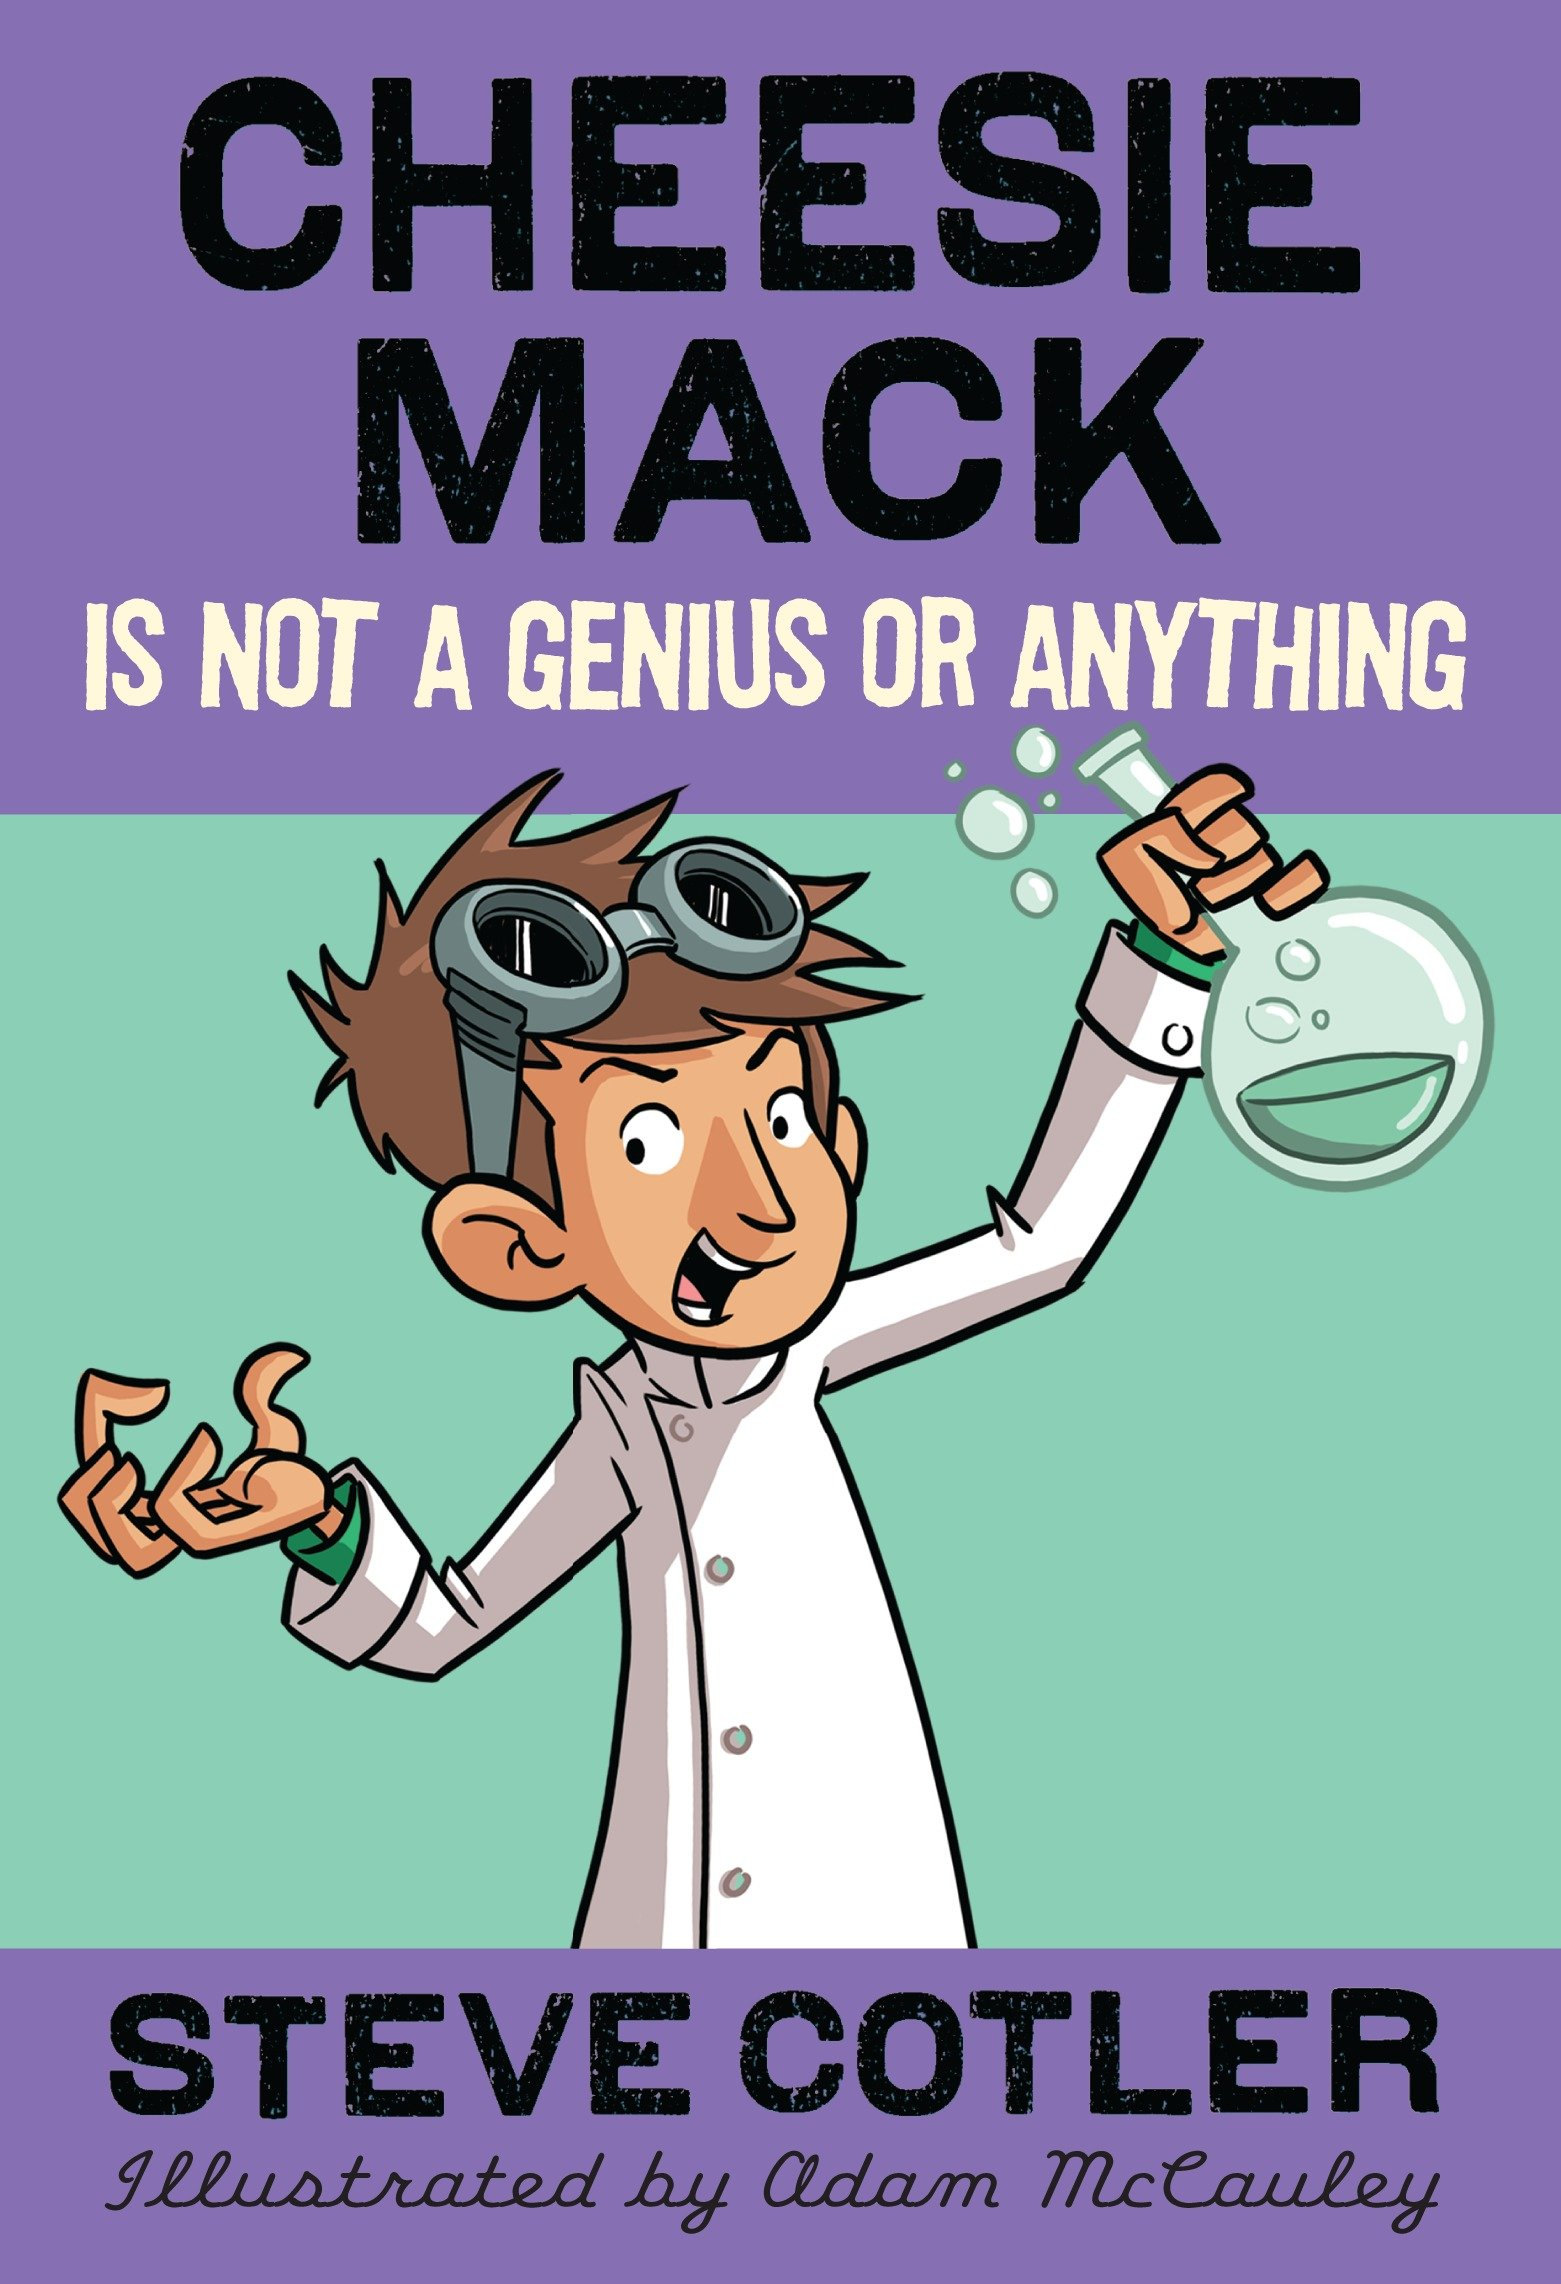 Cheesie Mack is not a genius or anything cover image